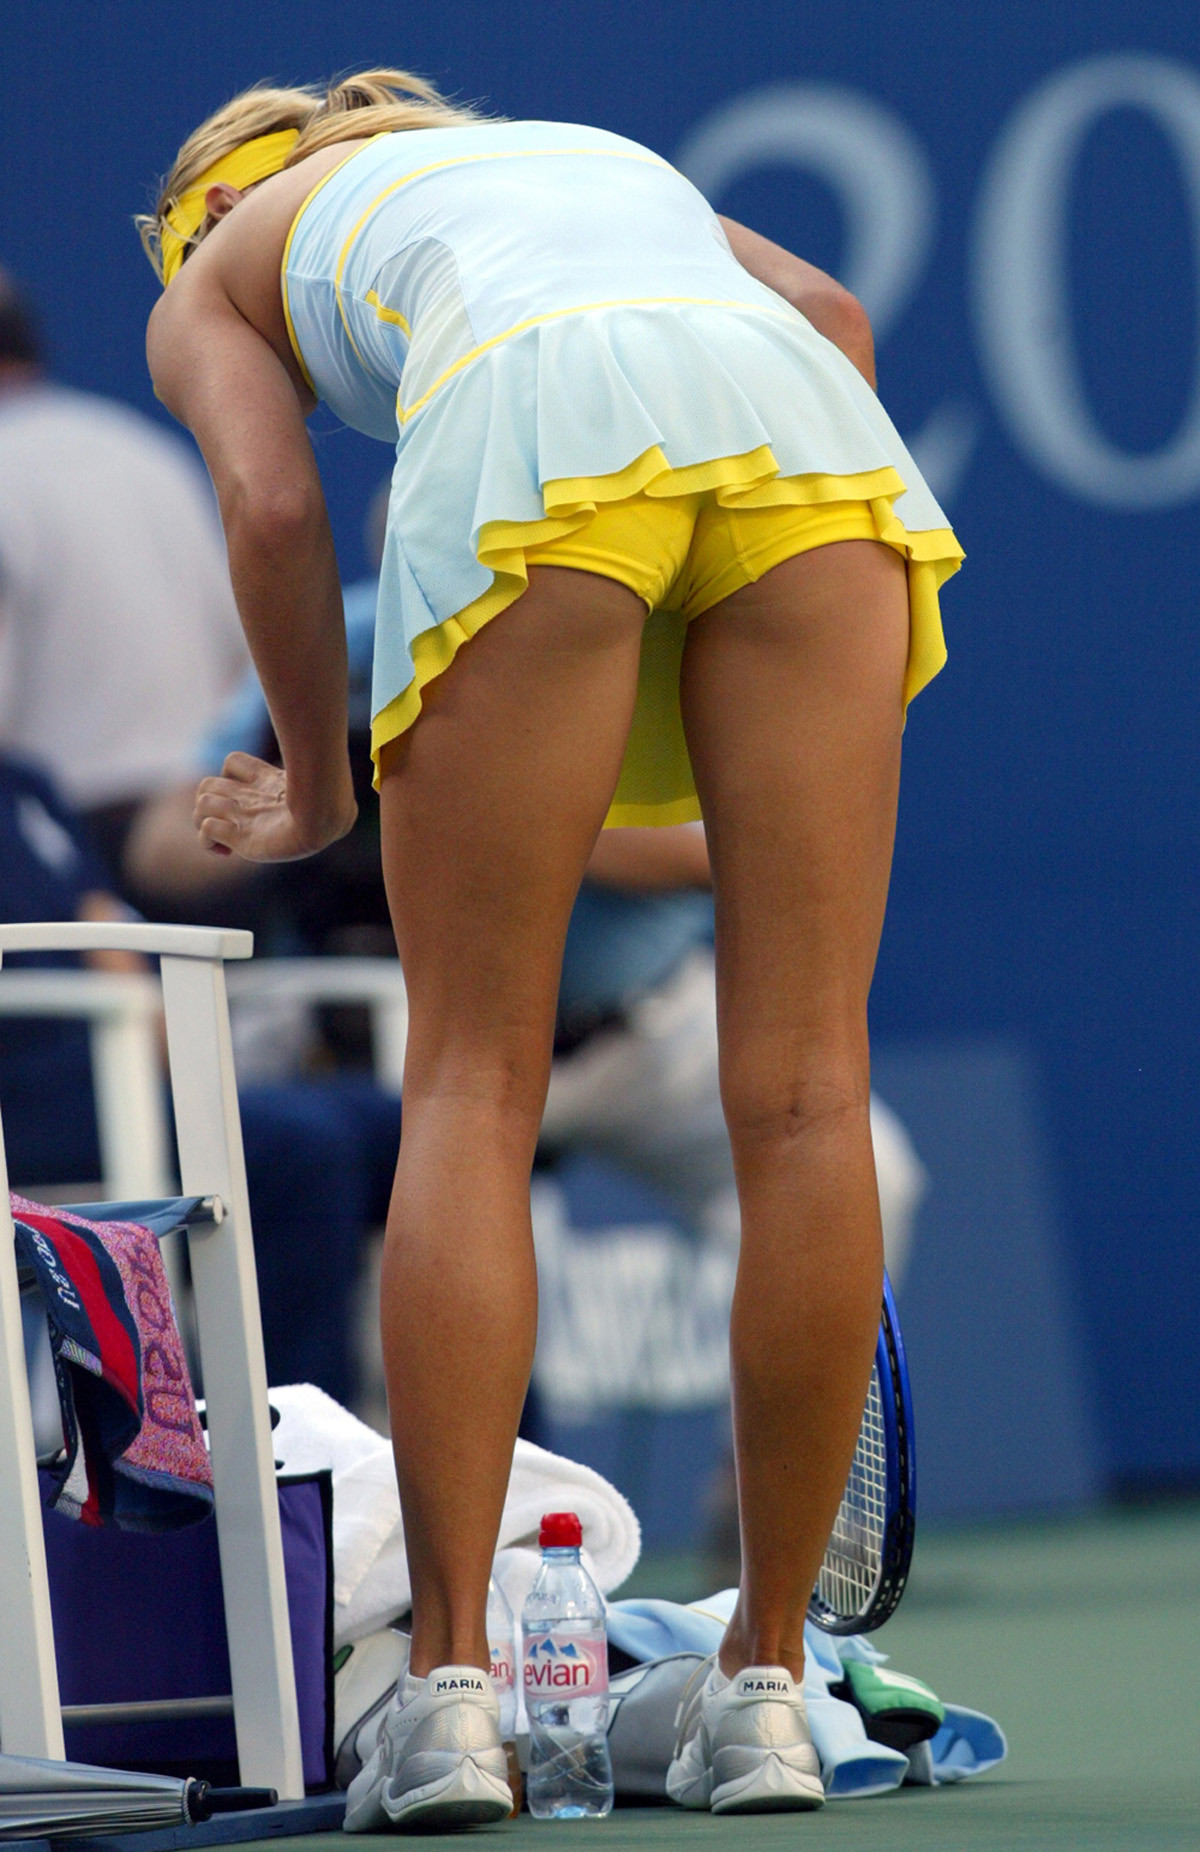 Picture Of The Day: Legs That Go For Days | Total Pro Sports